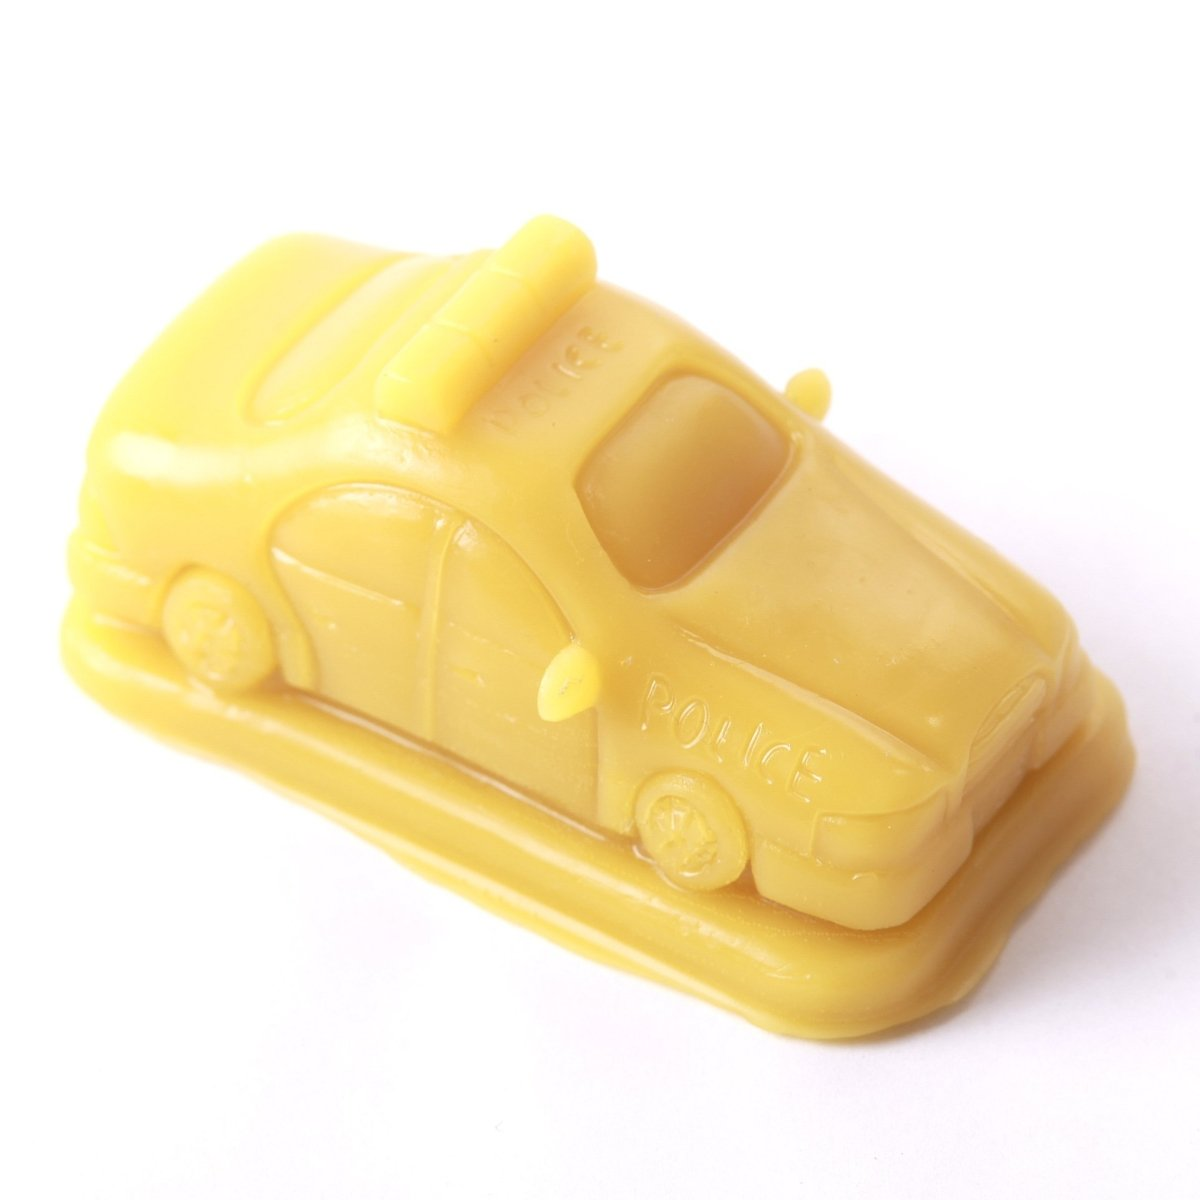 Police Car Silicone Soap Mould R0740 - Mystic Moments UK